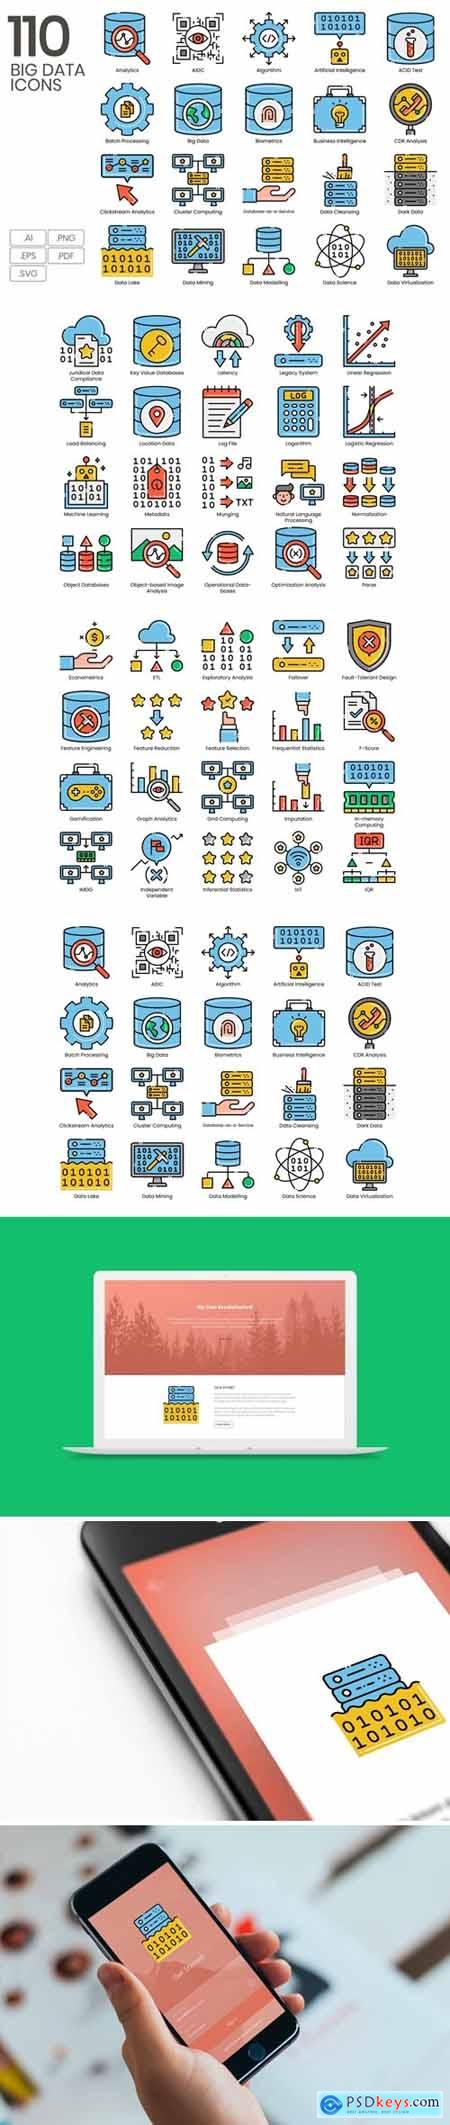 110 Big Data Line Icons